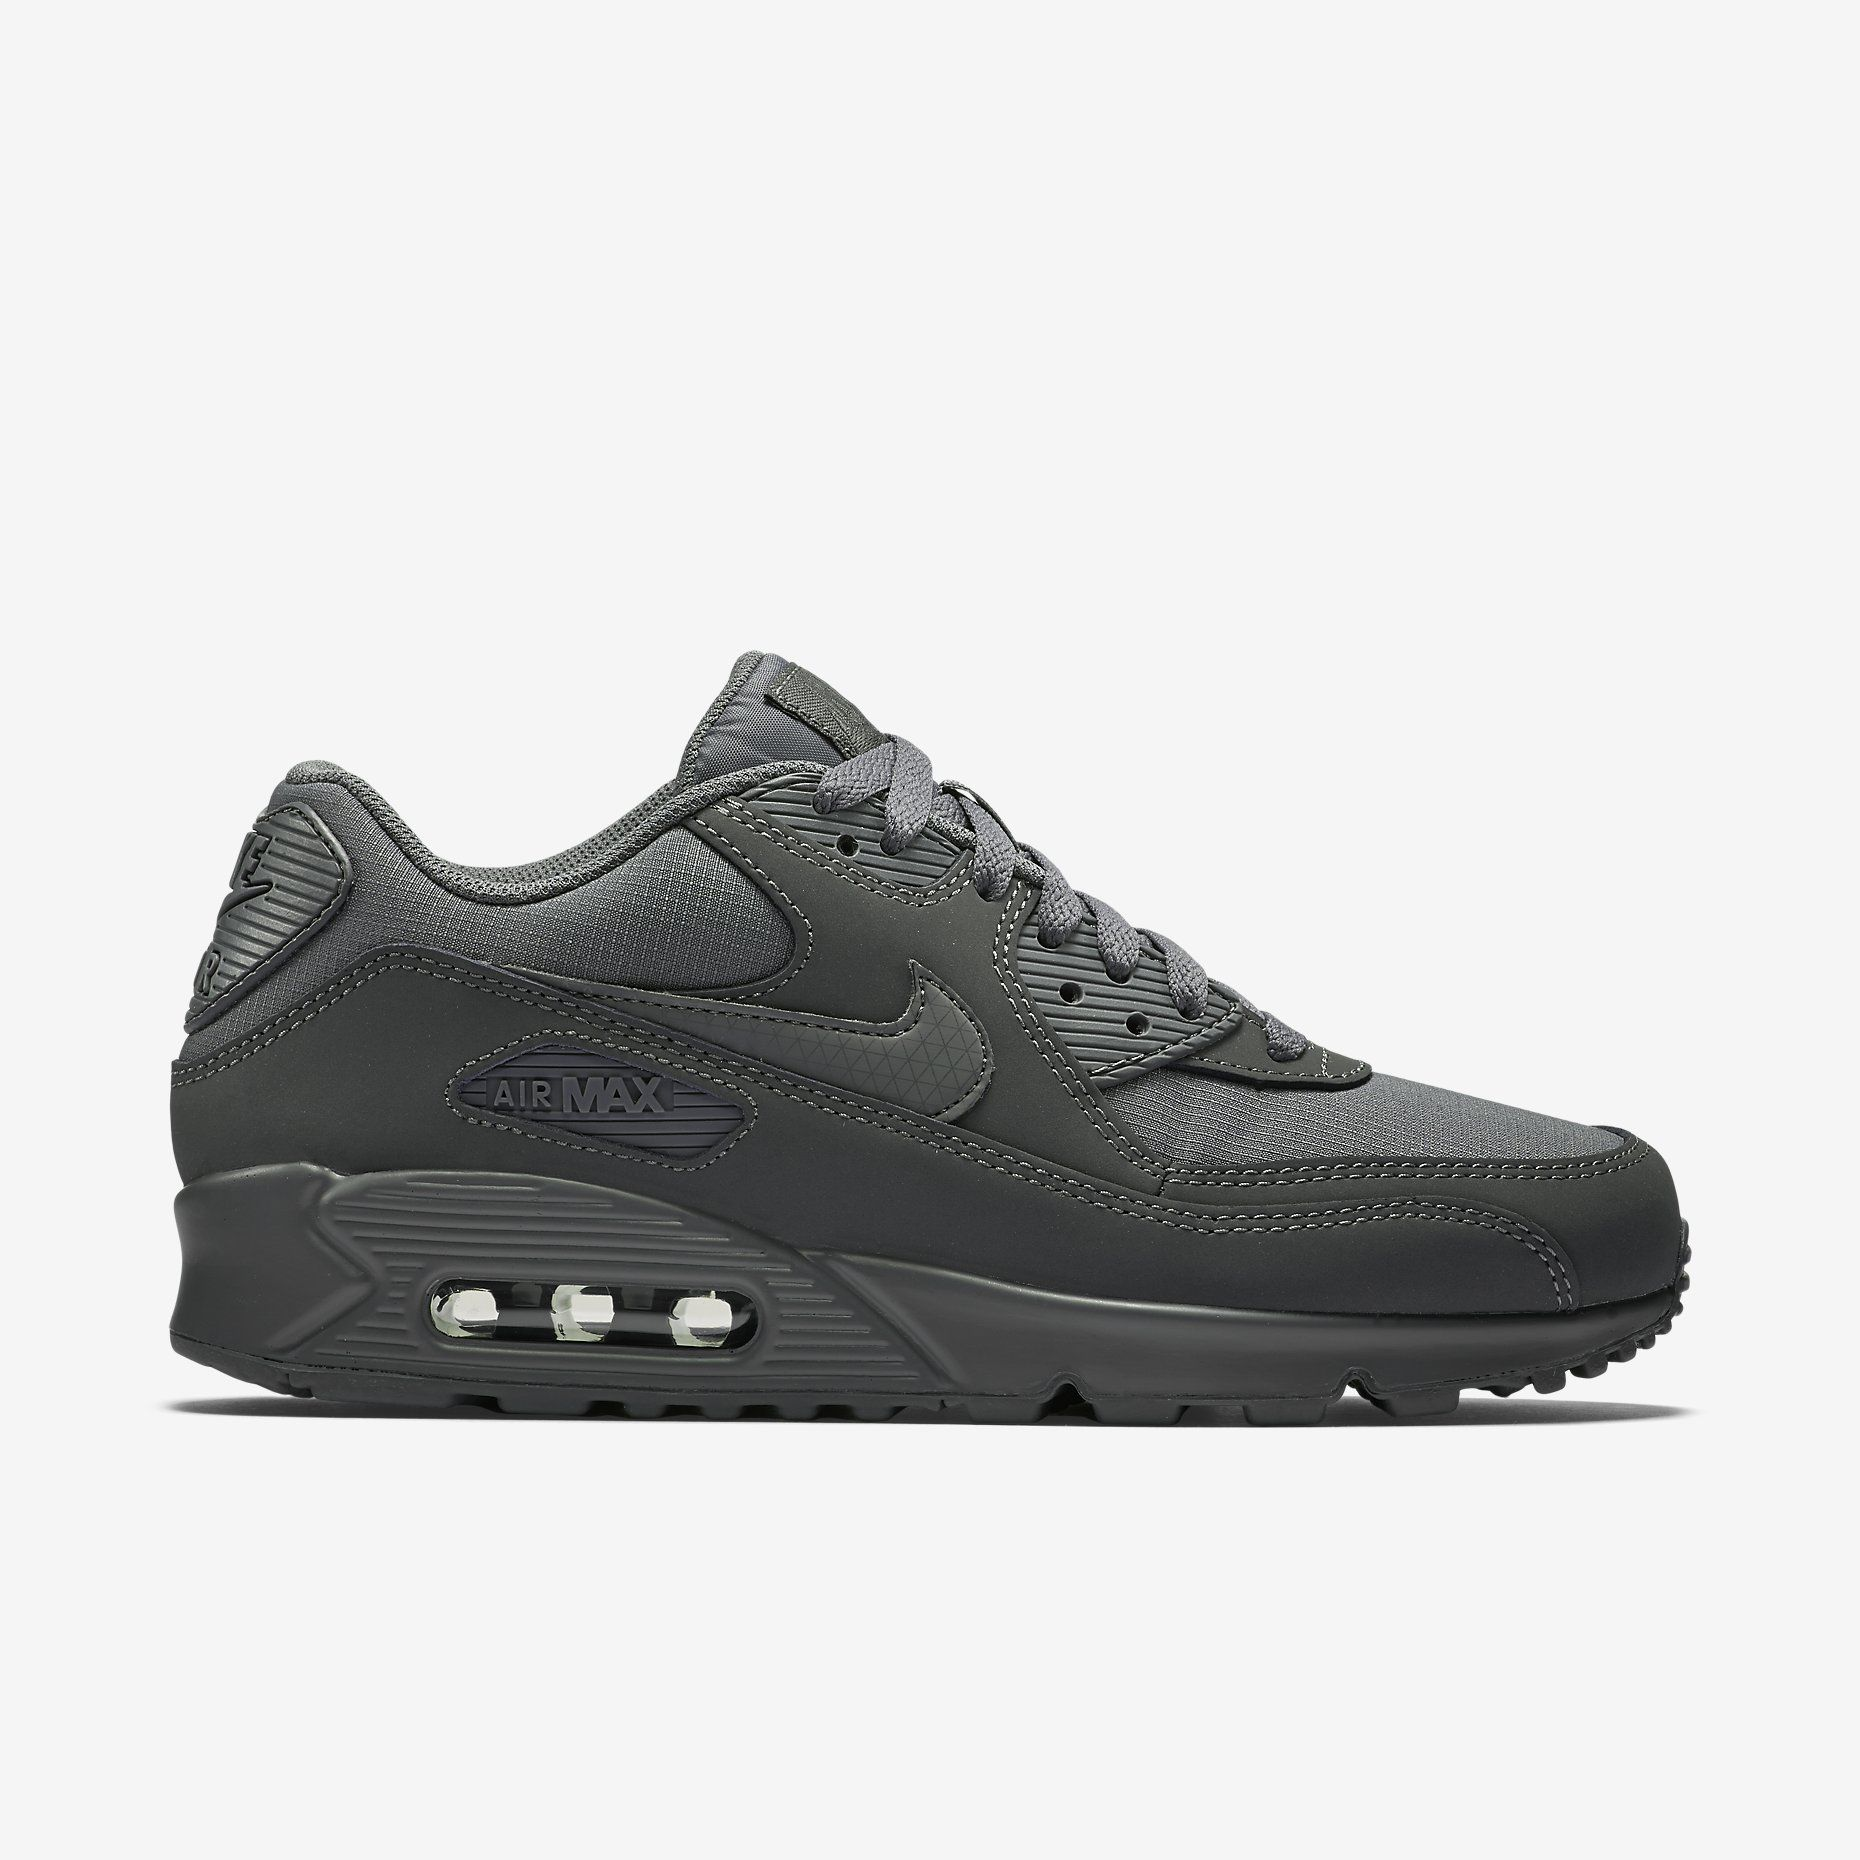 meilleur authentique 404dd 0a02c Nike Air Max 90 Essential – Chaussure pour Homme. Nike Store ...